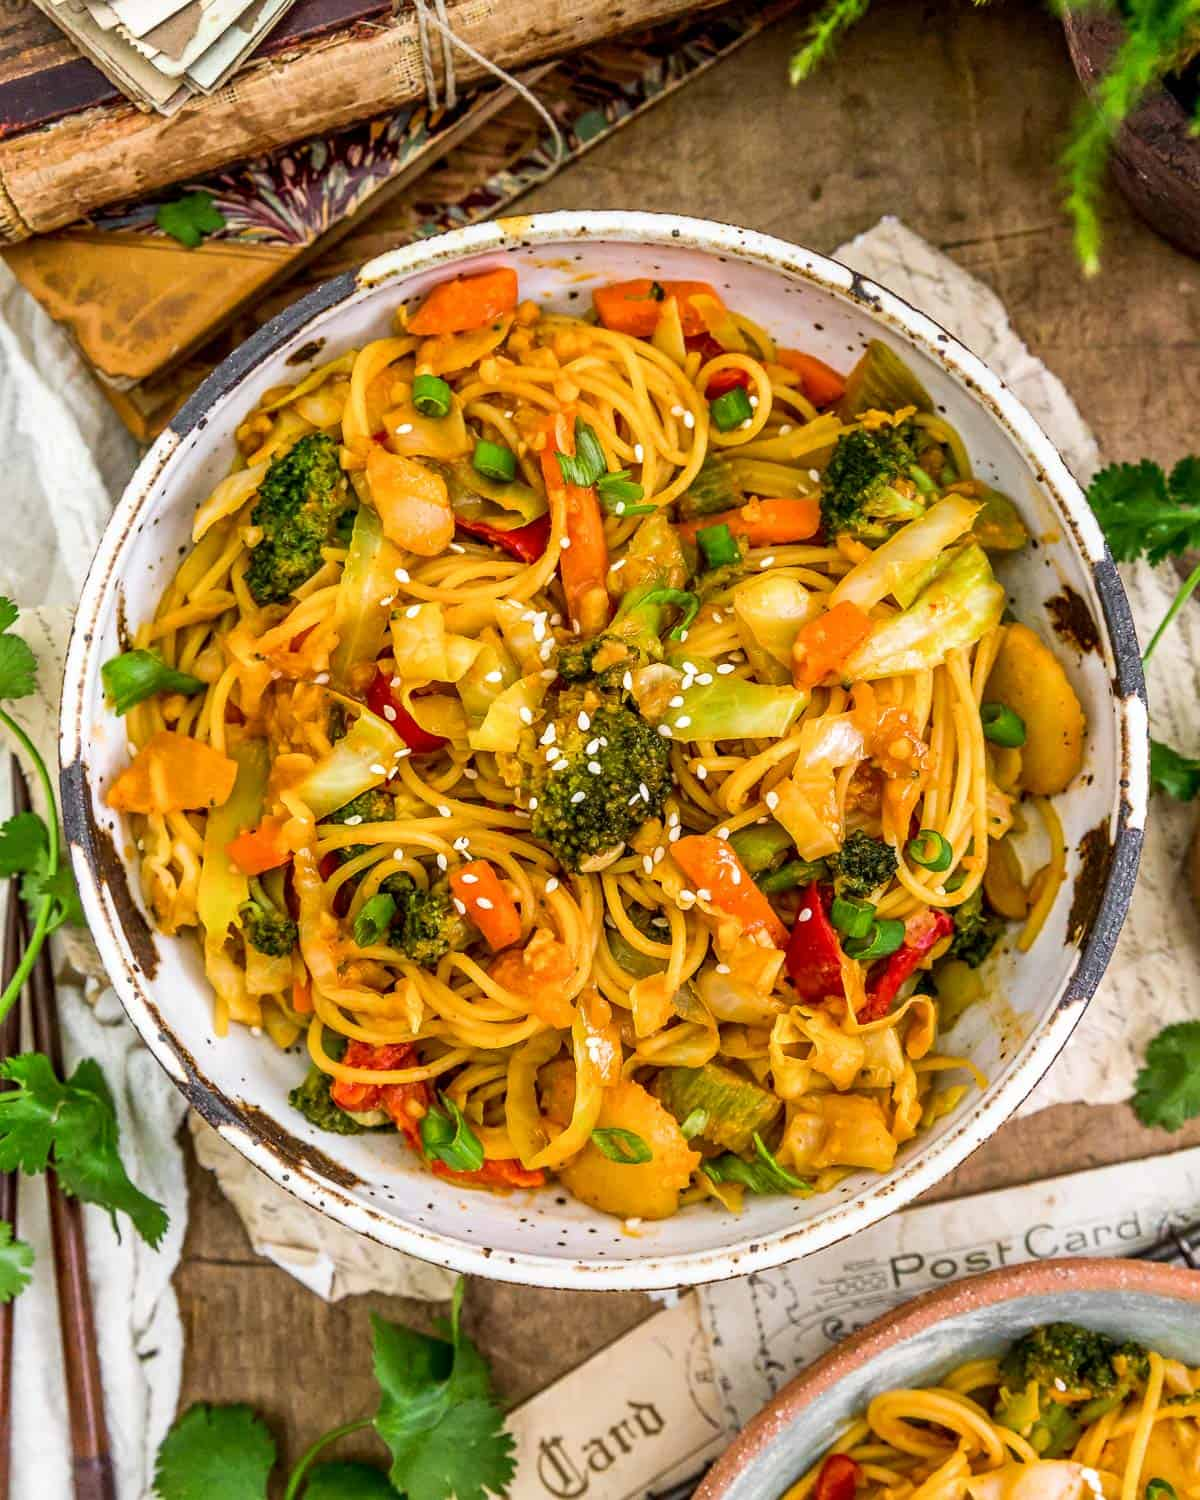 Bowl of Thai Curry Cabbage Noodle Stir Fry